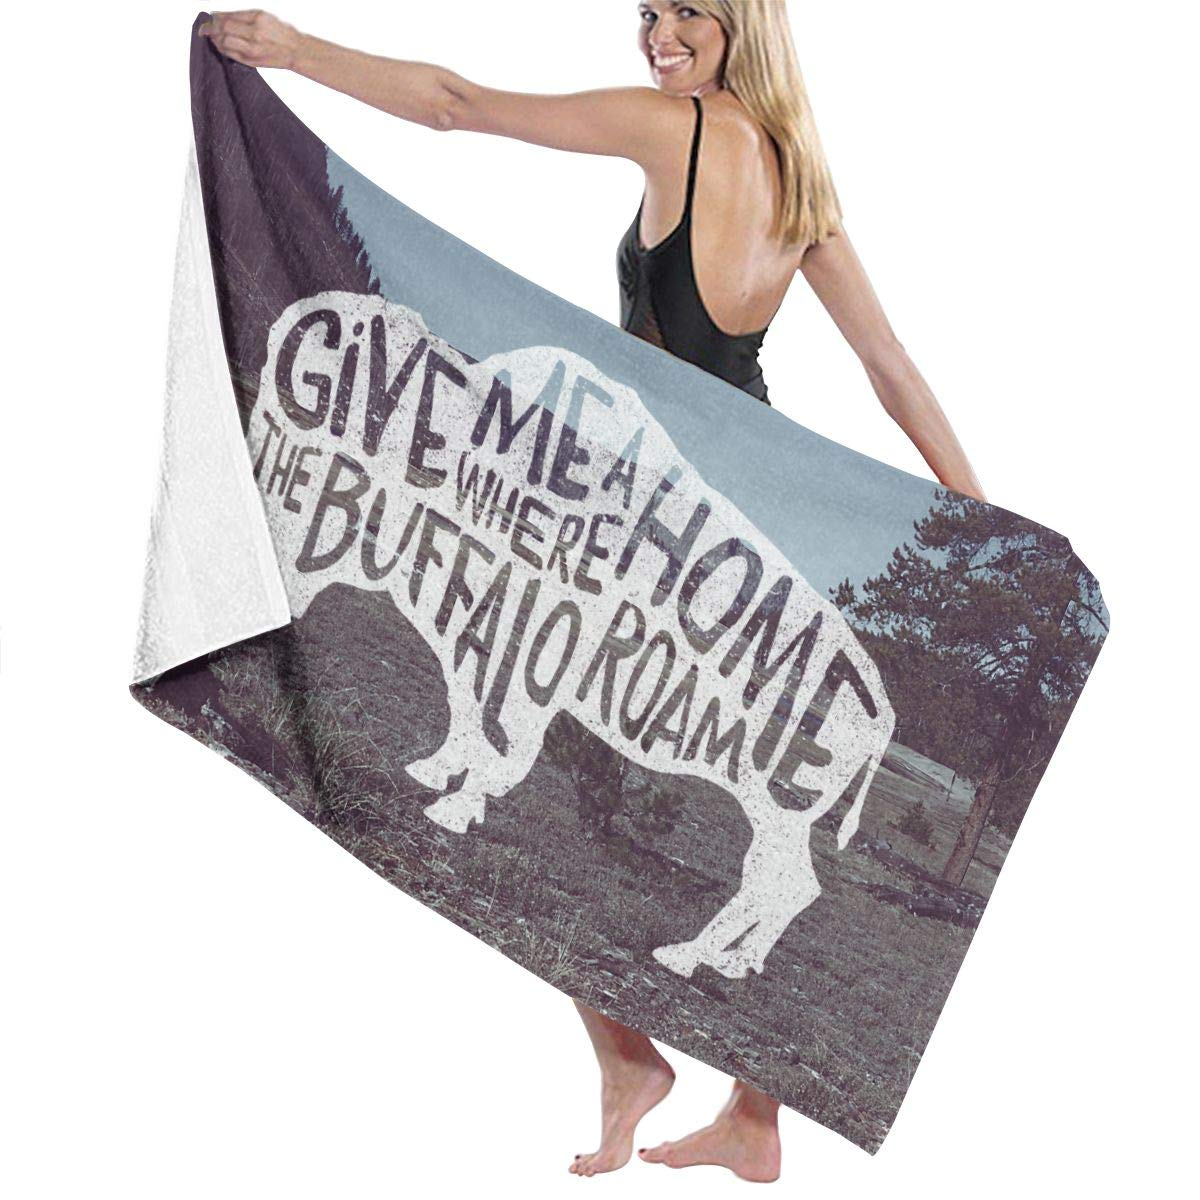 Unisex Give Me A Home Where The Buffalo Roam Premium Bath Towels, Ultra Soft Extra Large Highly Absorbent Quick Dry Bath Sheet for Beach Surfing Swimming Sports Travel Yoga Spa Hotel